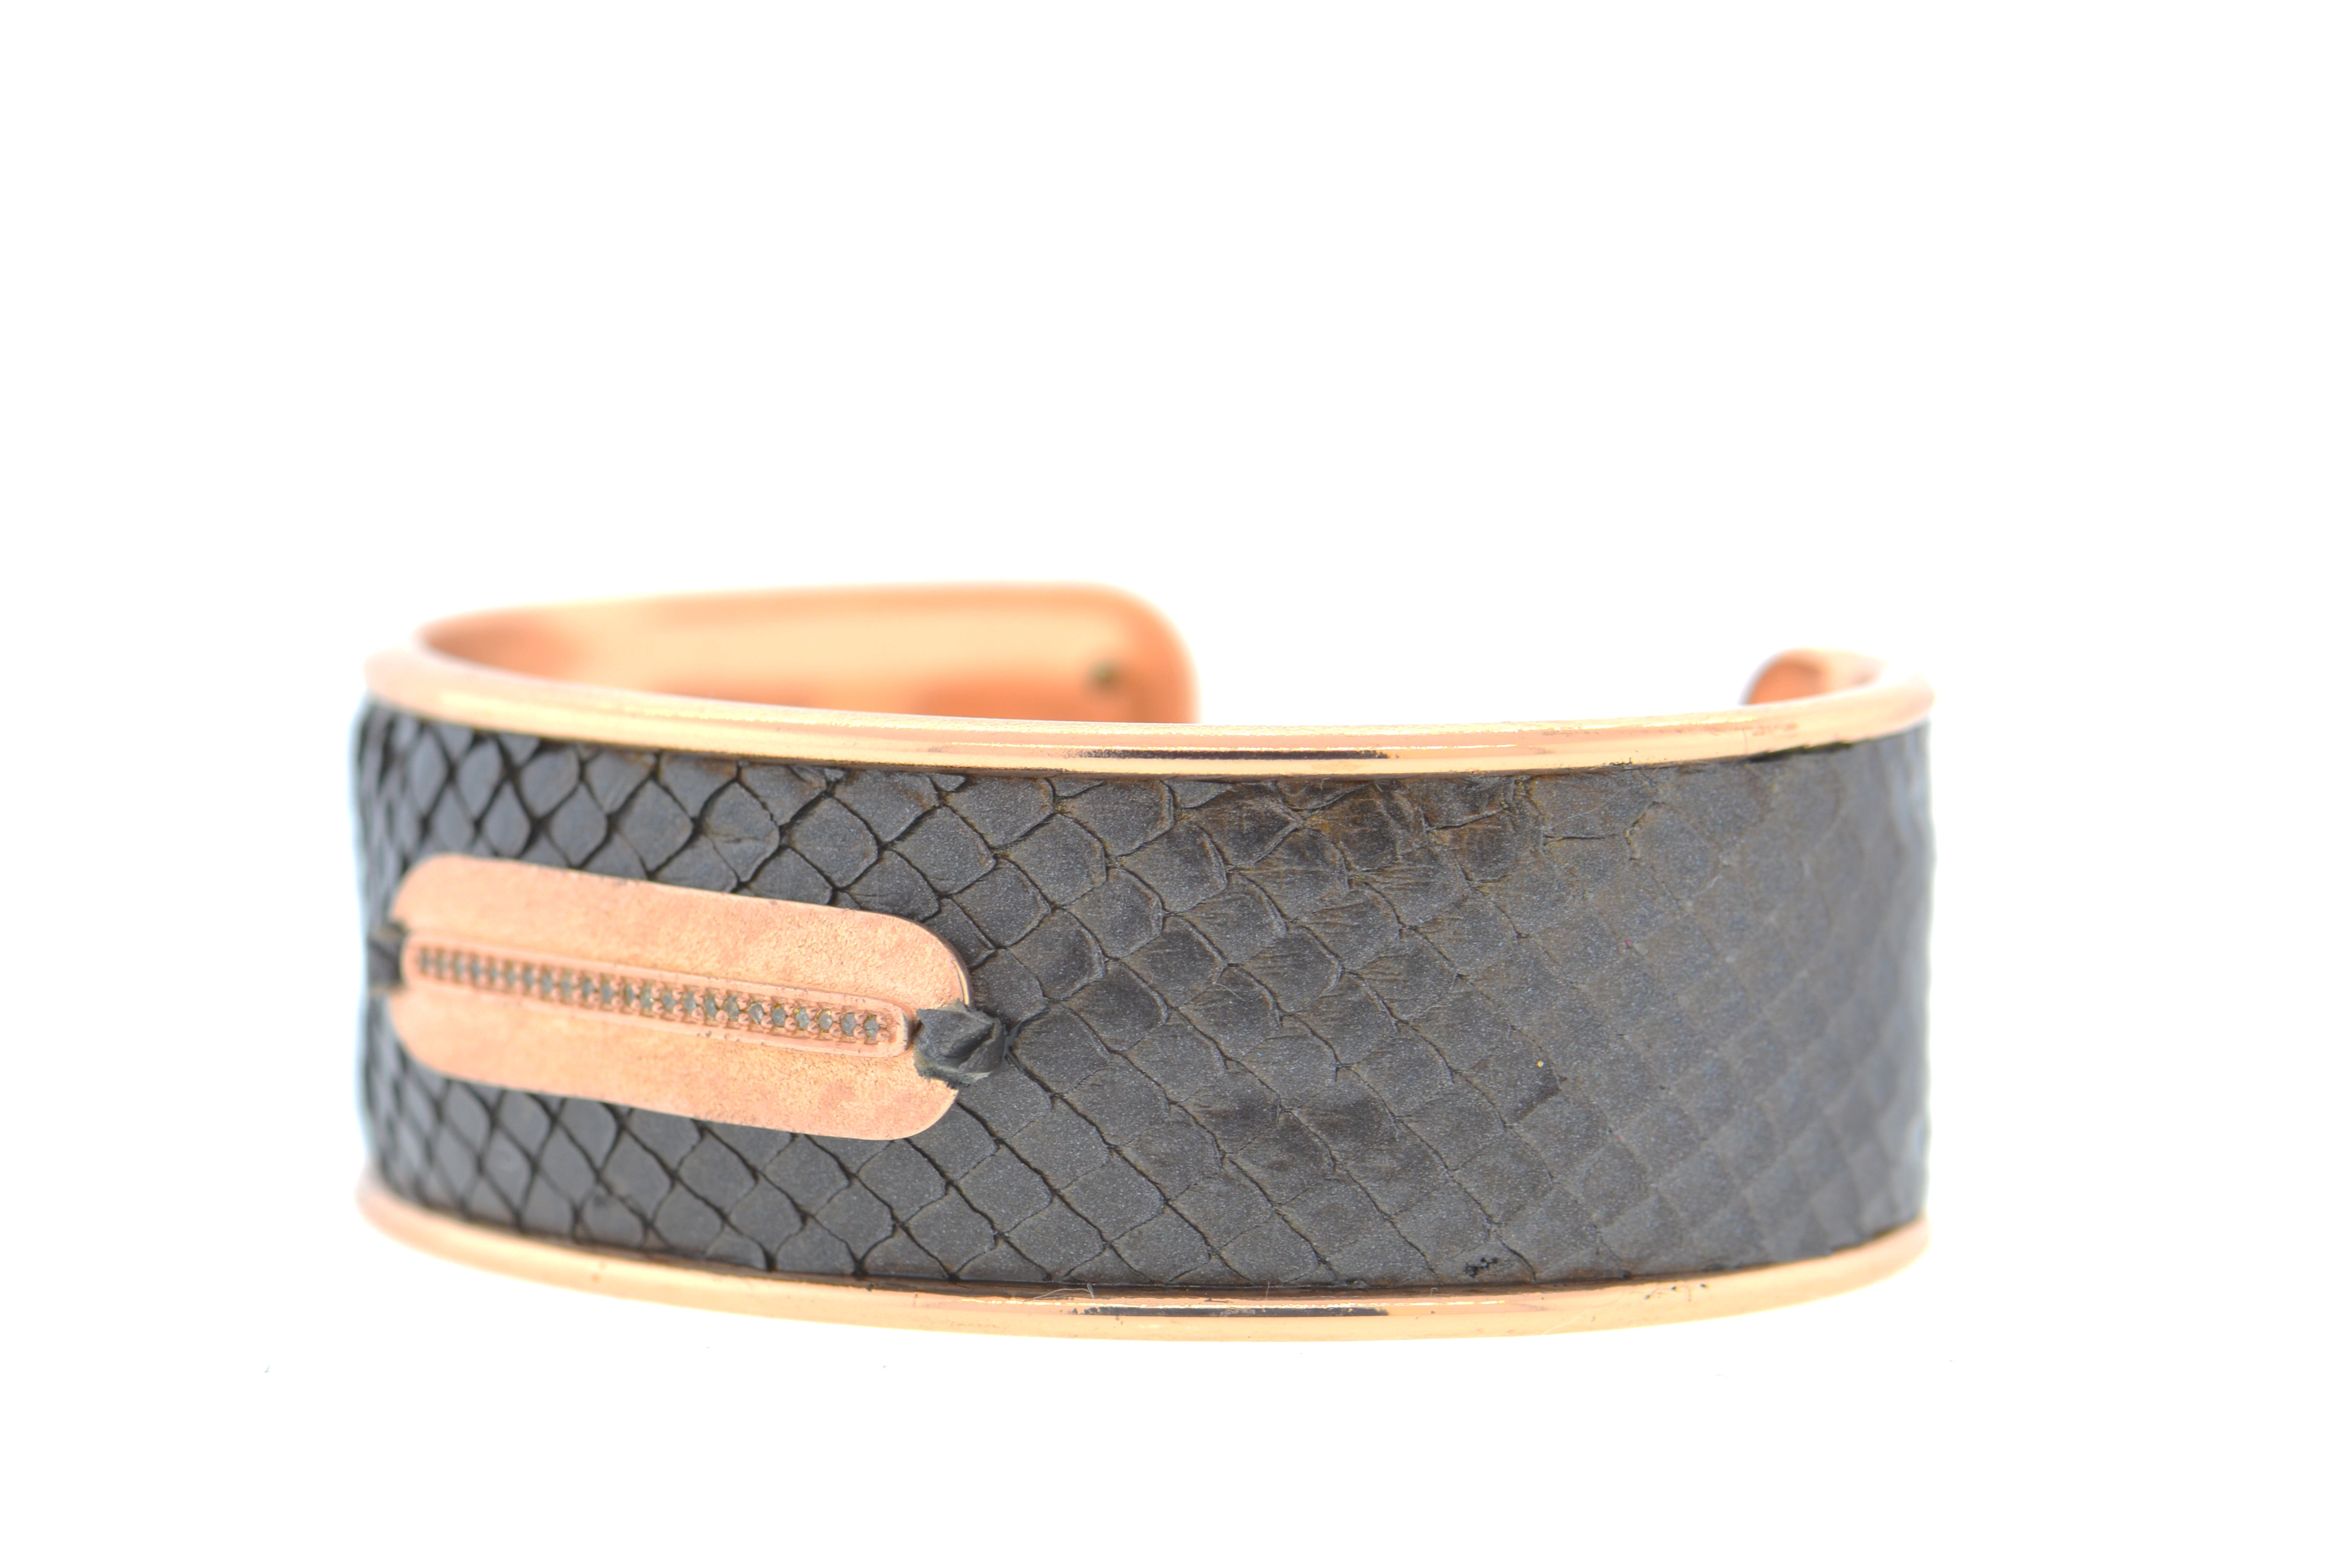 Medium Mahogany Python Cuff in Rose Gold